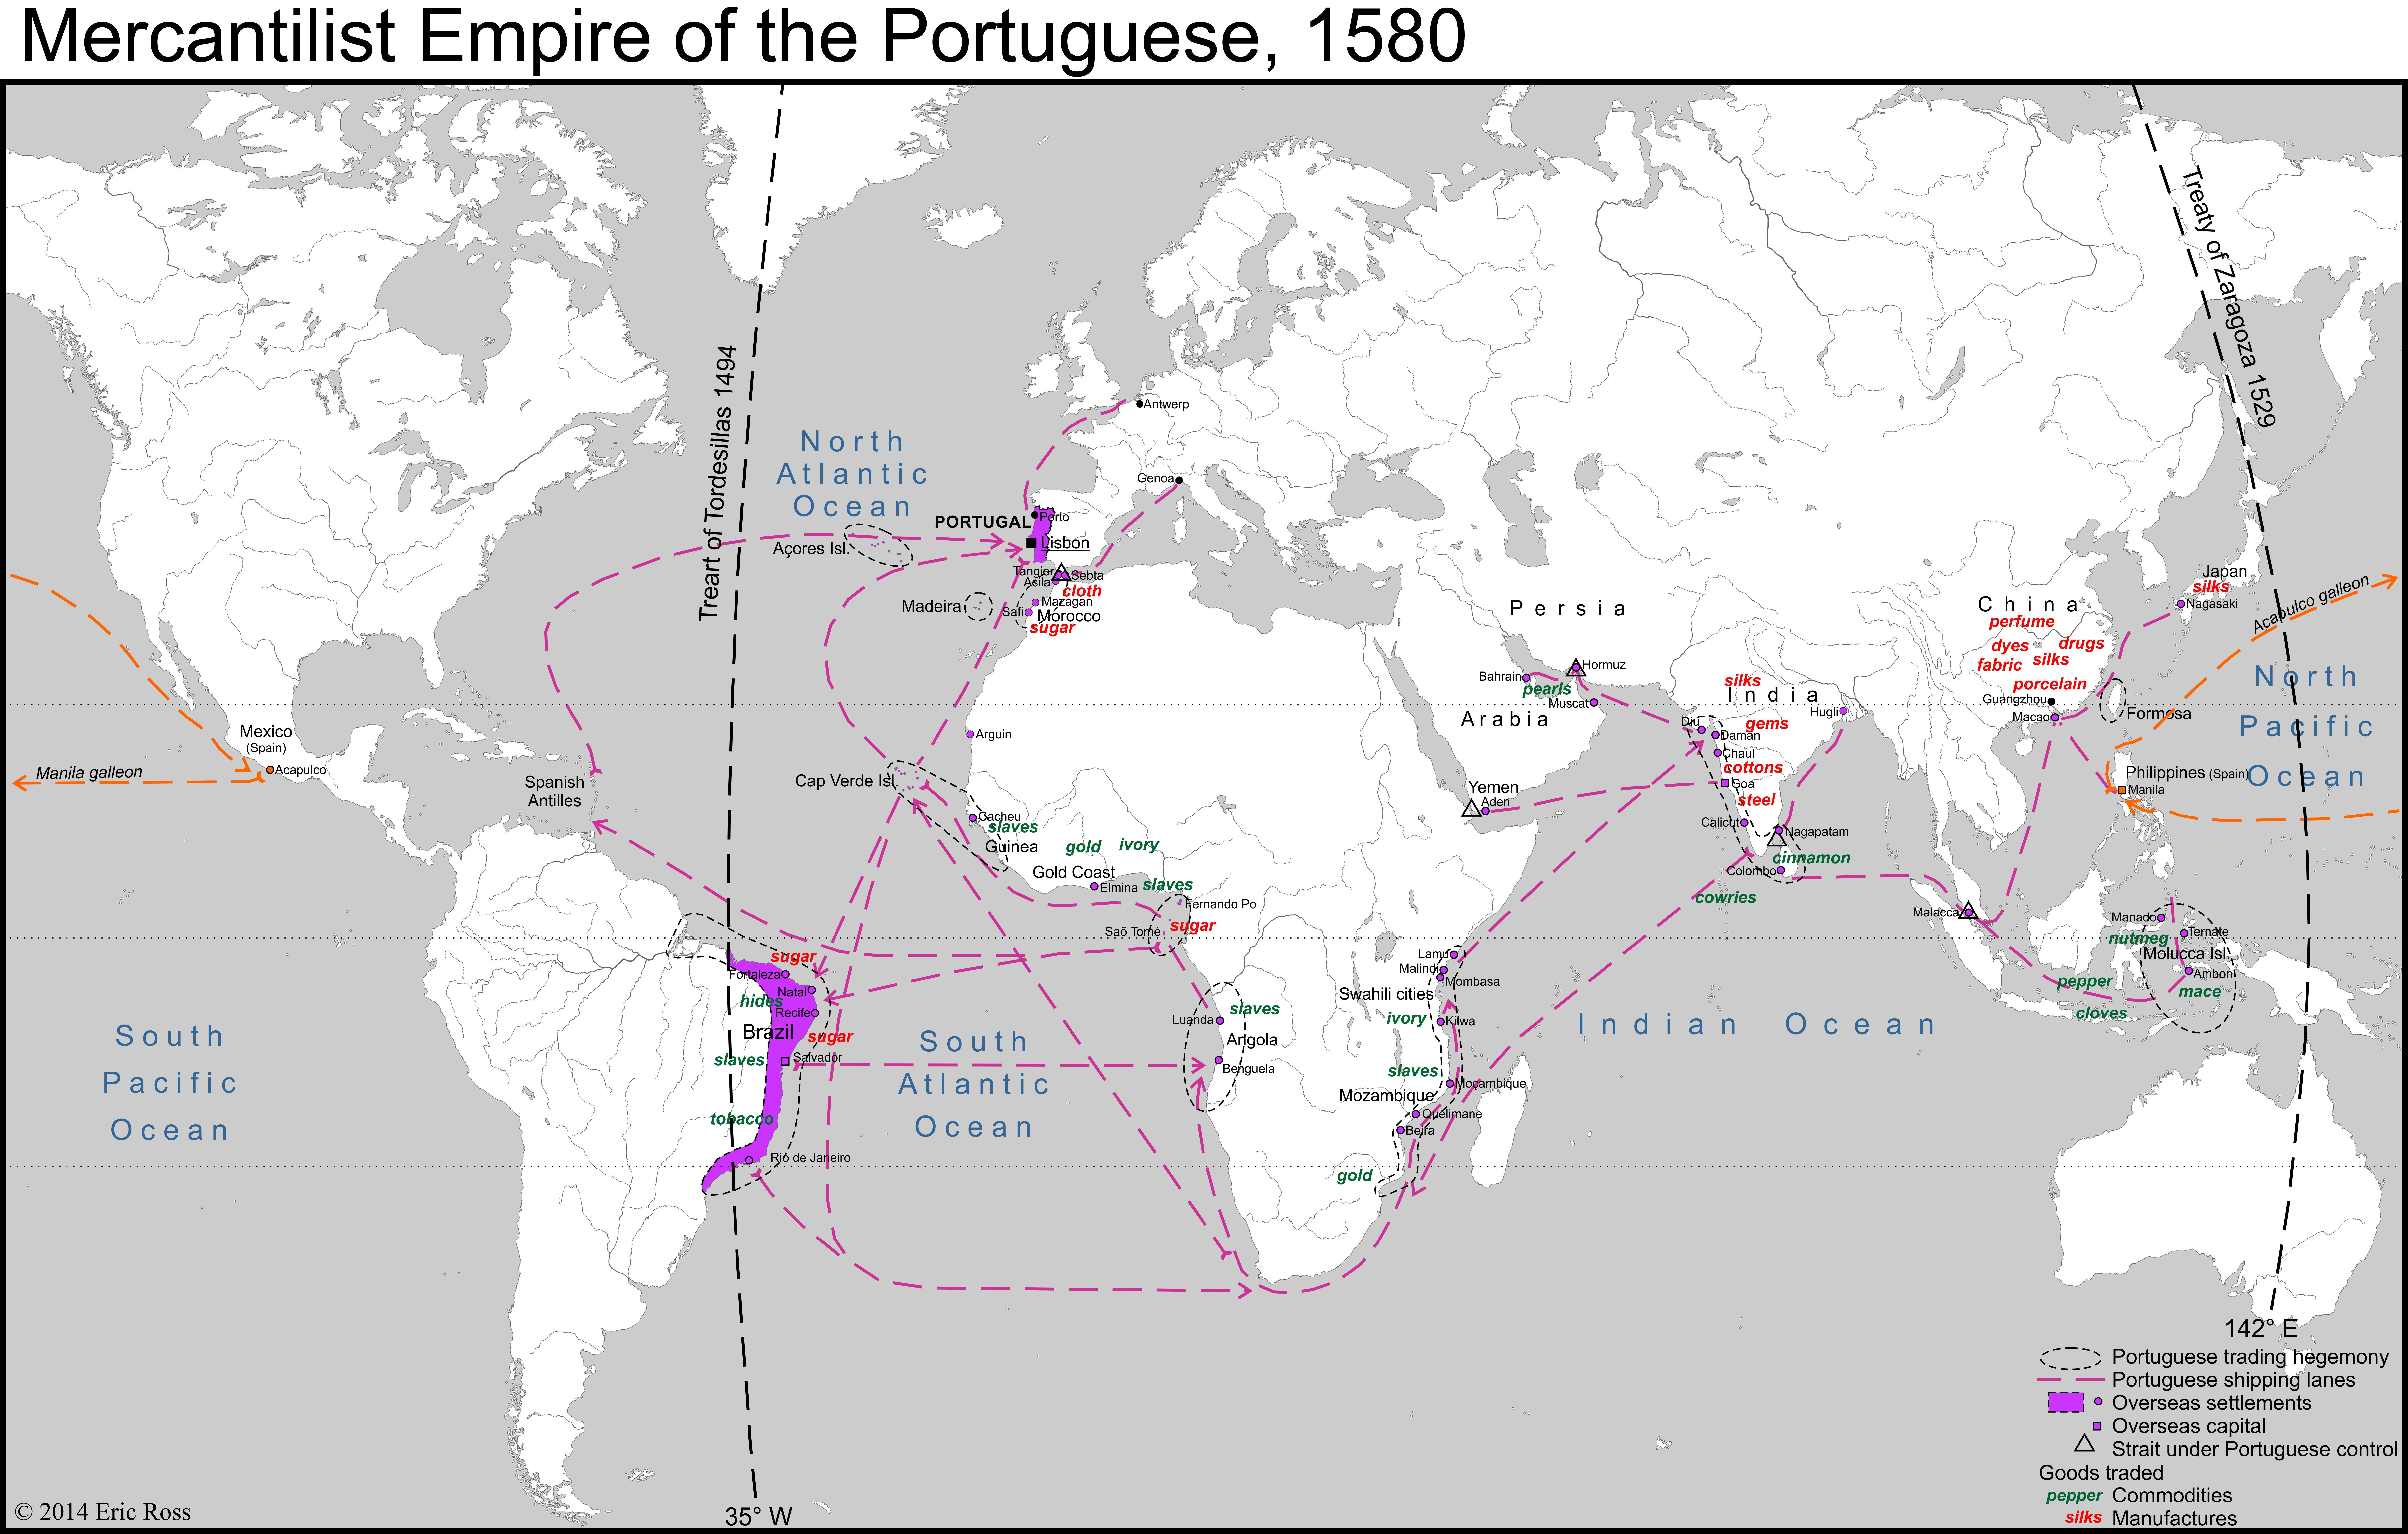 Mercantilist empire of portugal 1580 by eric ross map portugal mercantilist empire of portugal 1580 by eric ross map portugal world gumiabroncs